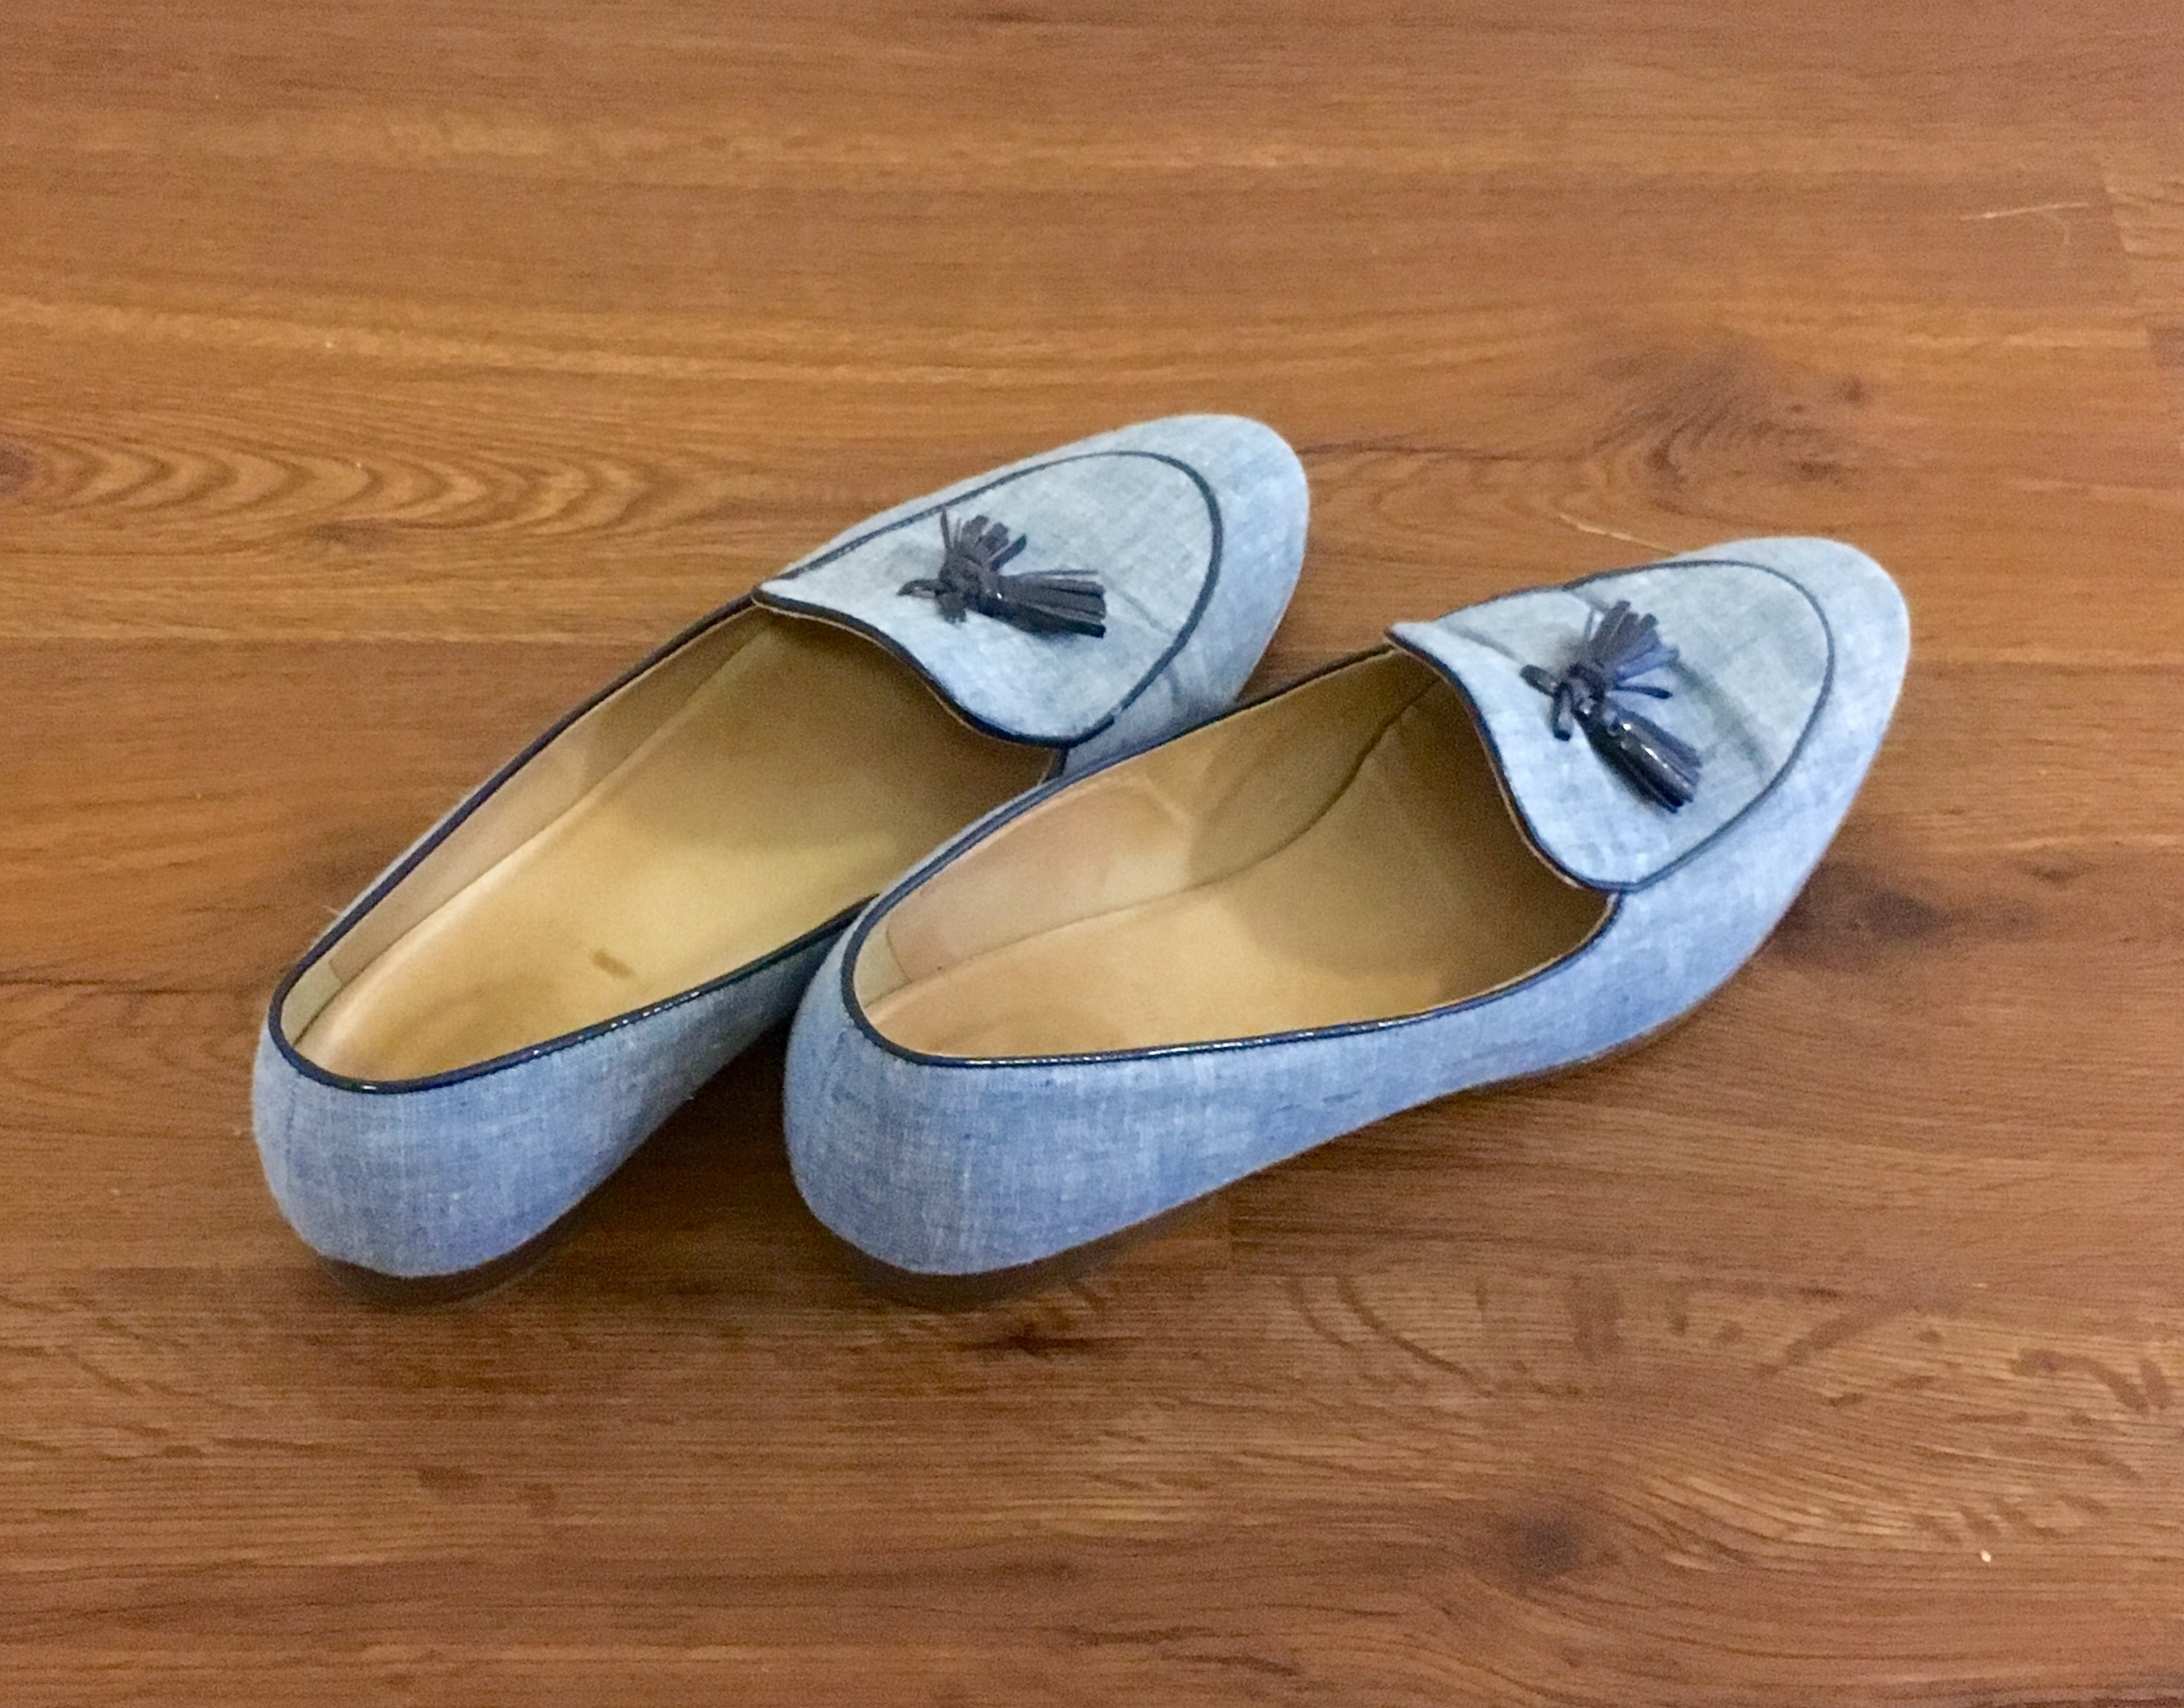 Jcrew loafers that I usually pair with white shorts and a blue blouse